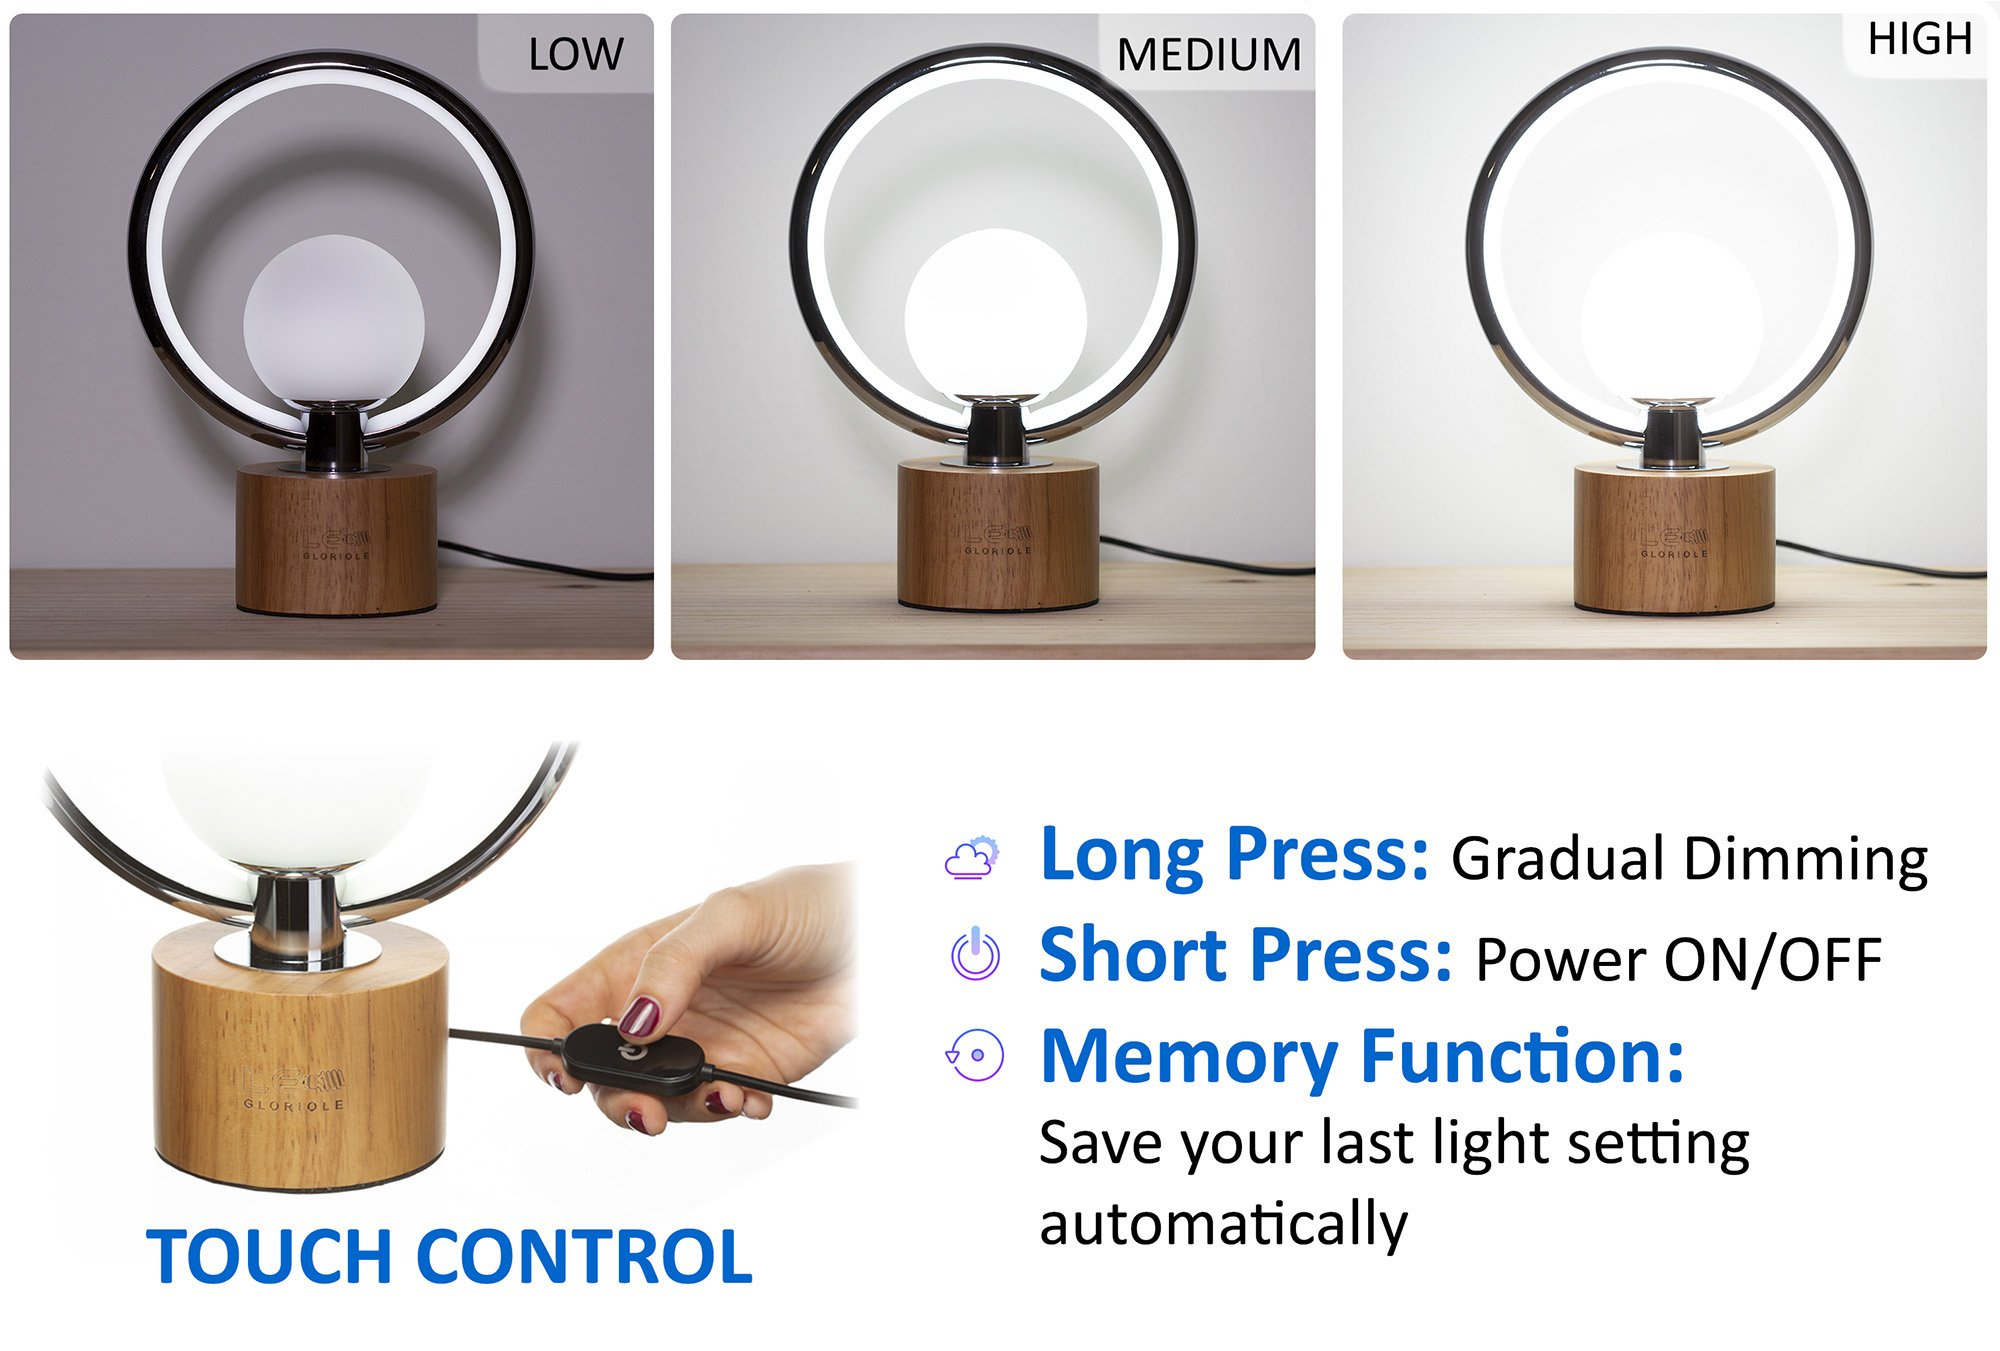 Modern LEDGloriole Desk Lamp with Unique Shade – Bedroom Lamps with Natural Wooden Base – Luxury Bedside Table Lamp – Well-Designed LED Light Perfect for Bedroom or Office by LEDGloriole (Image #3)